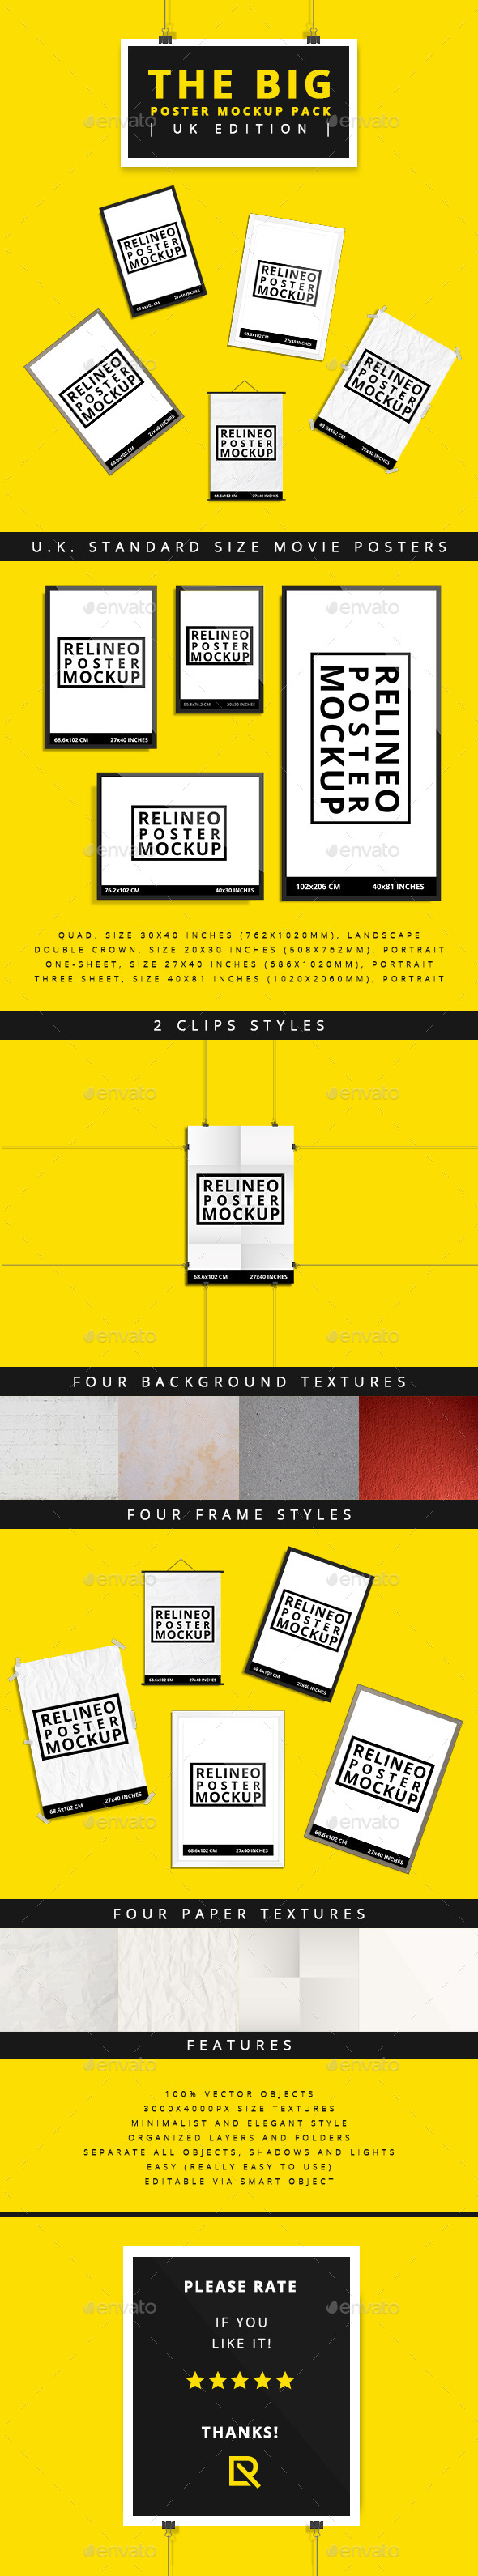 Poster Mock-up Pack U.K Edition - Posters Print